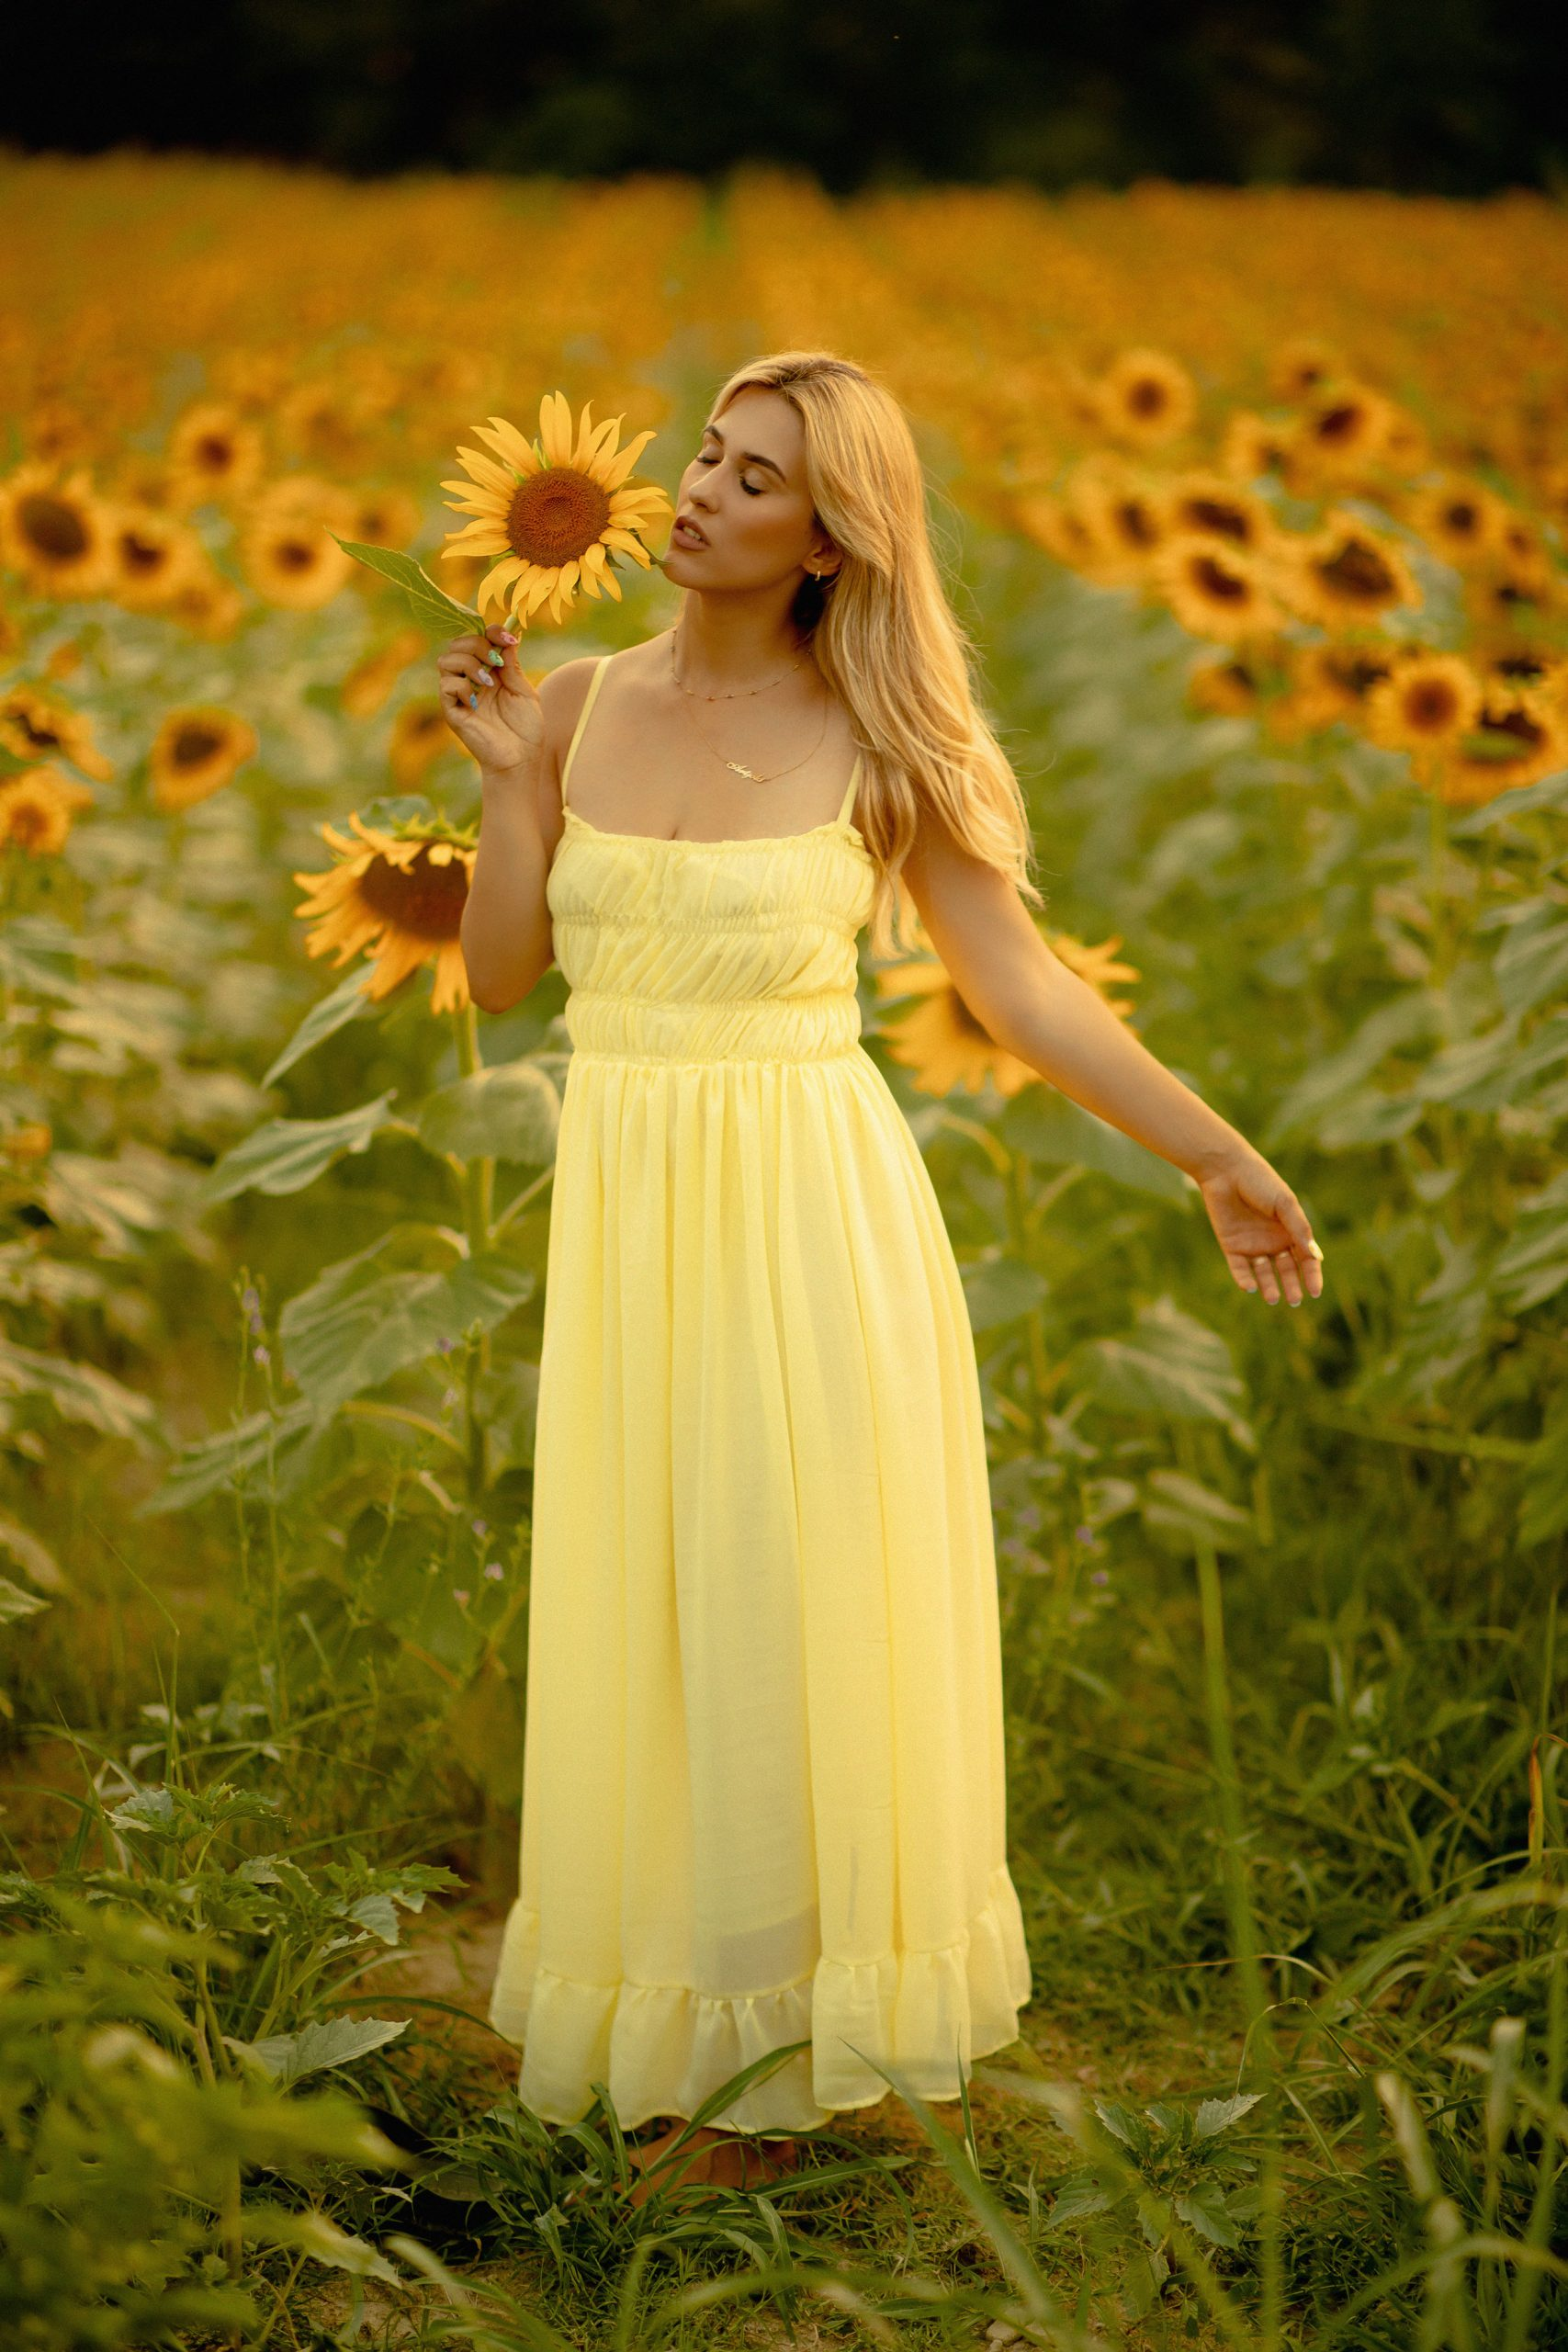 Golden hour photography in a sunflower field